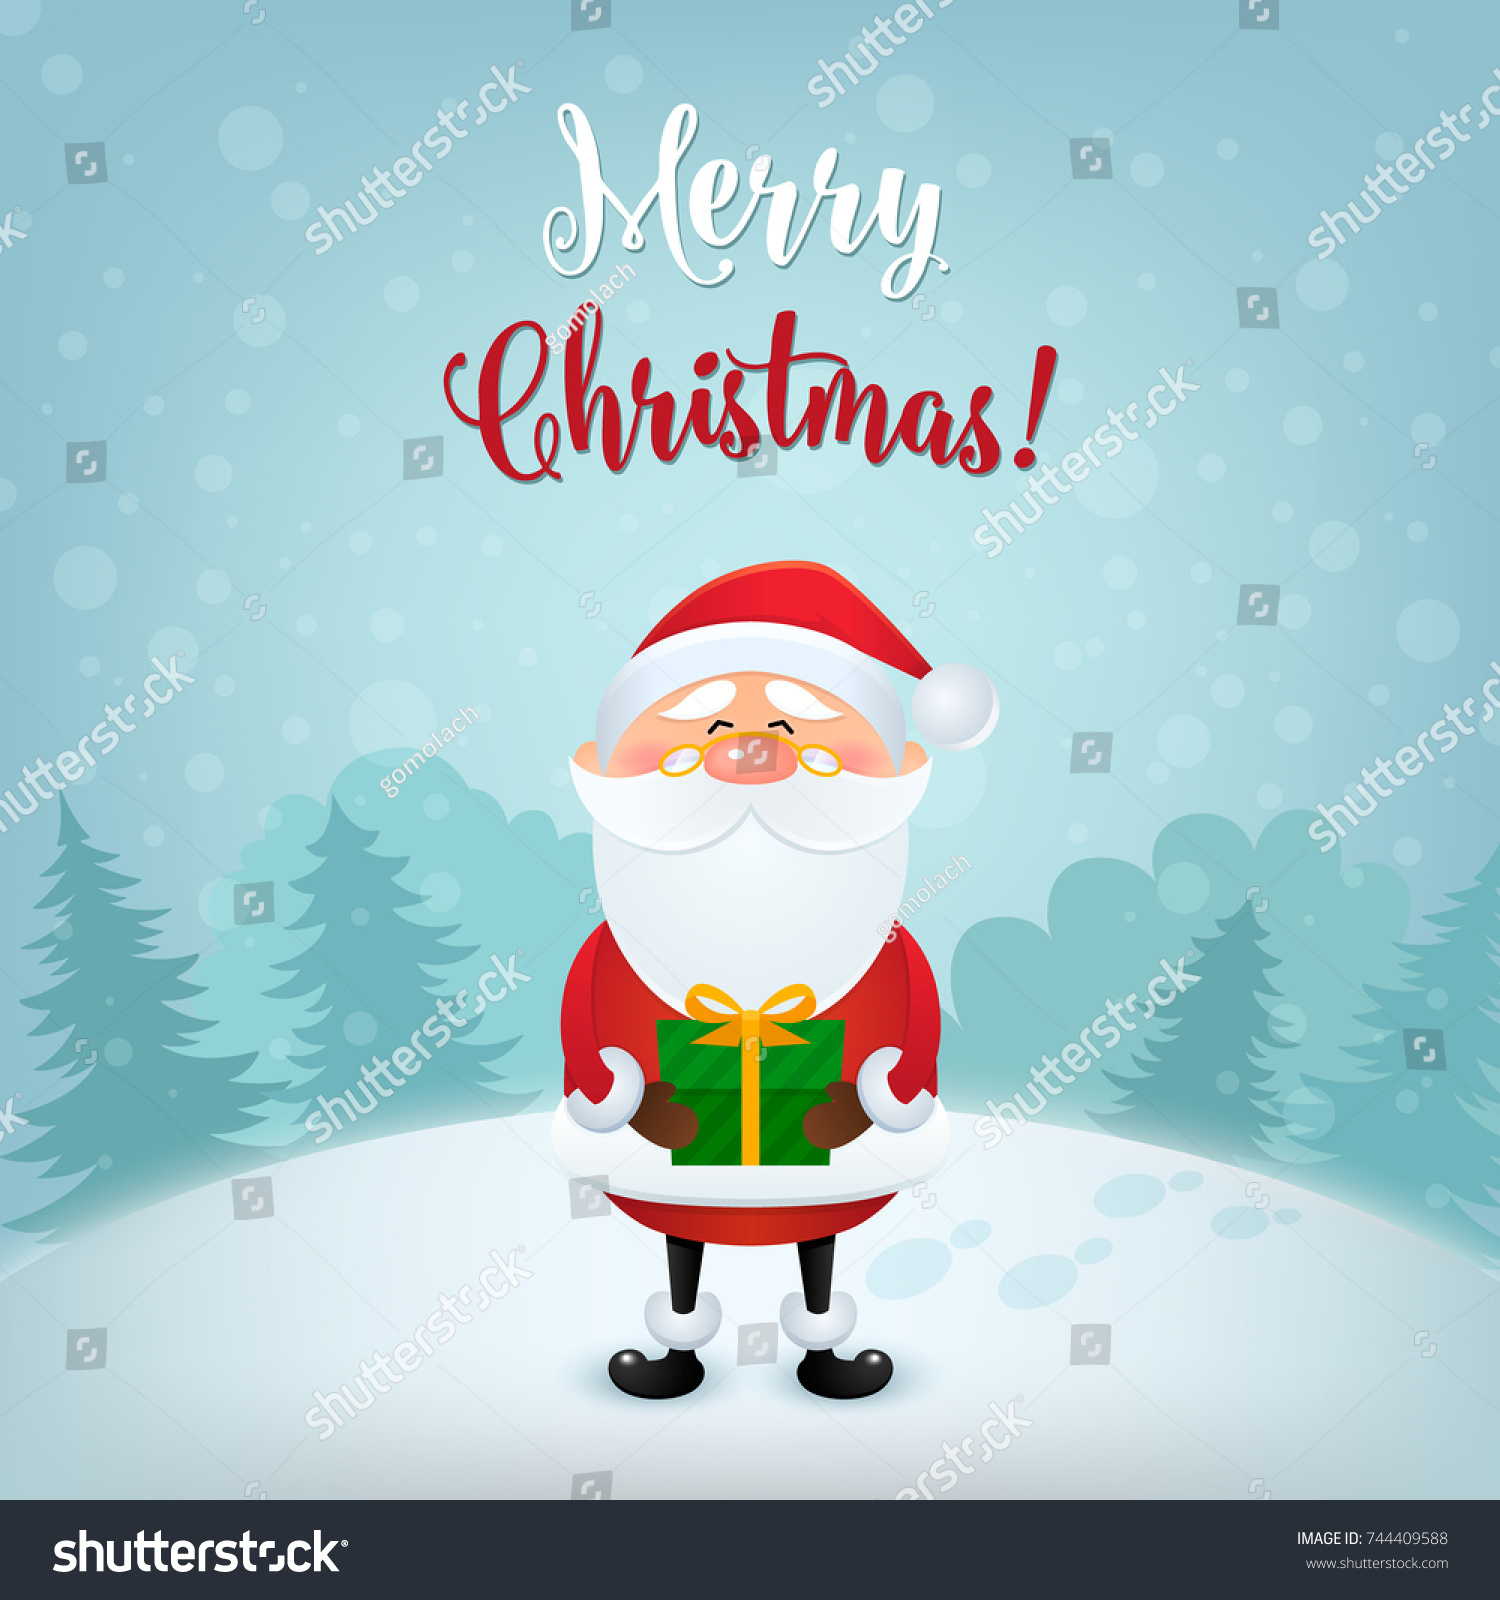 Merry Christmas Greeting Card Christmas And New Year Background